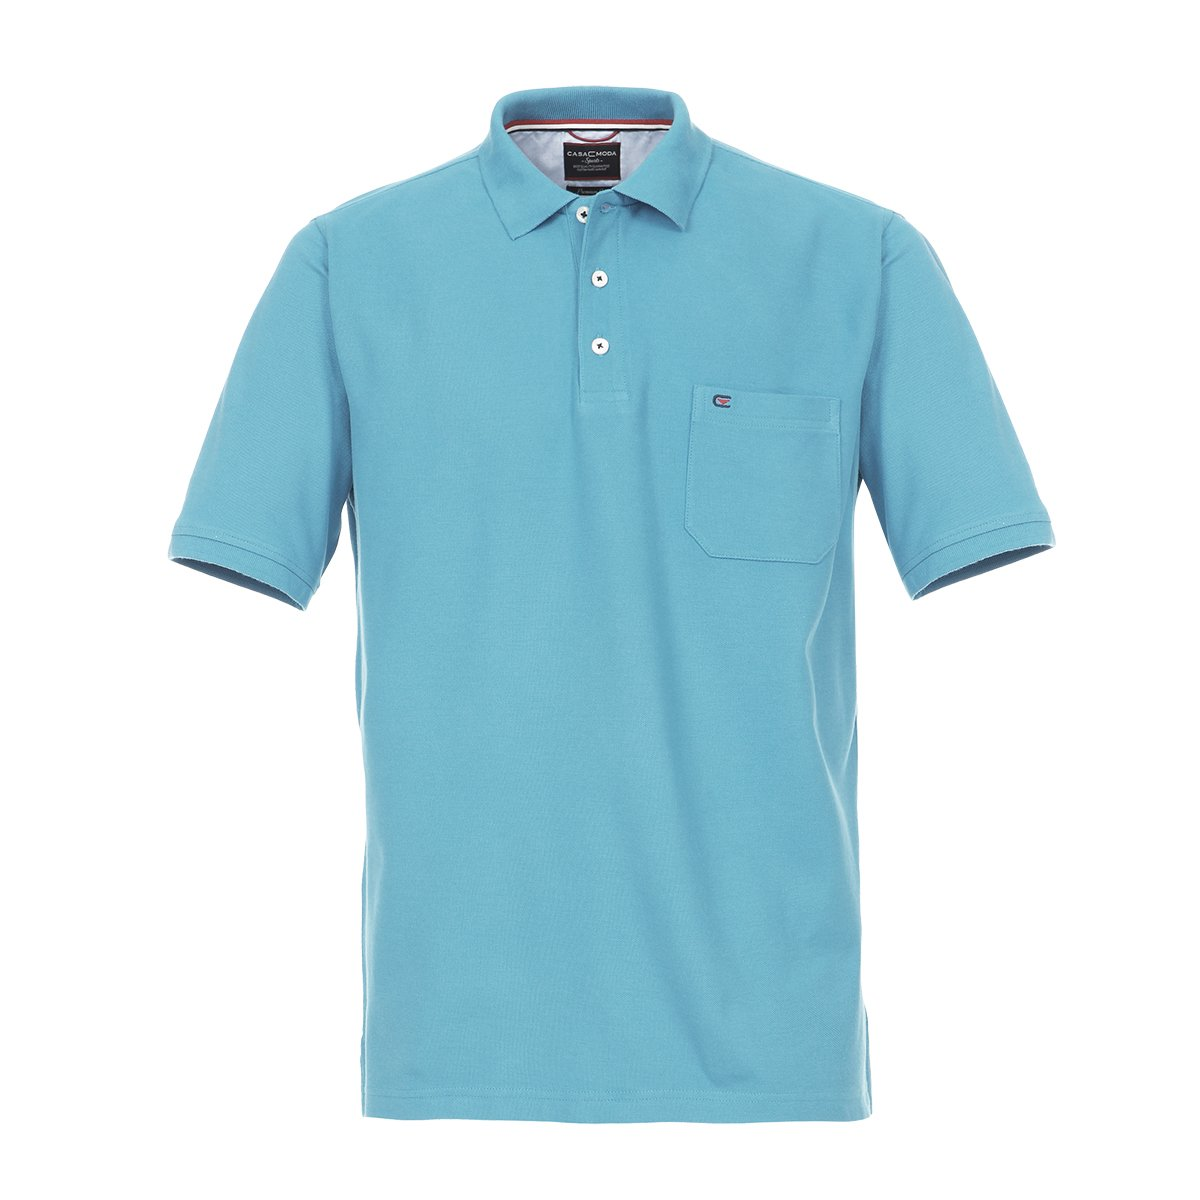 Casamoda Camiseta Polo Celeste en Tallas XXL, 2xl-8xl:4XL: Amazon ...